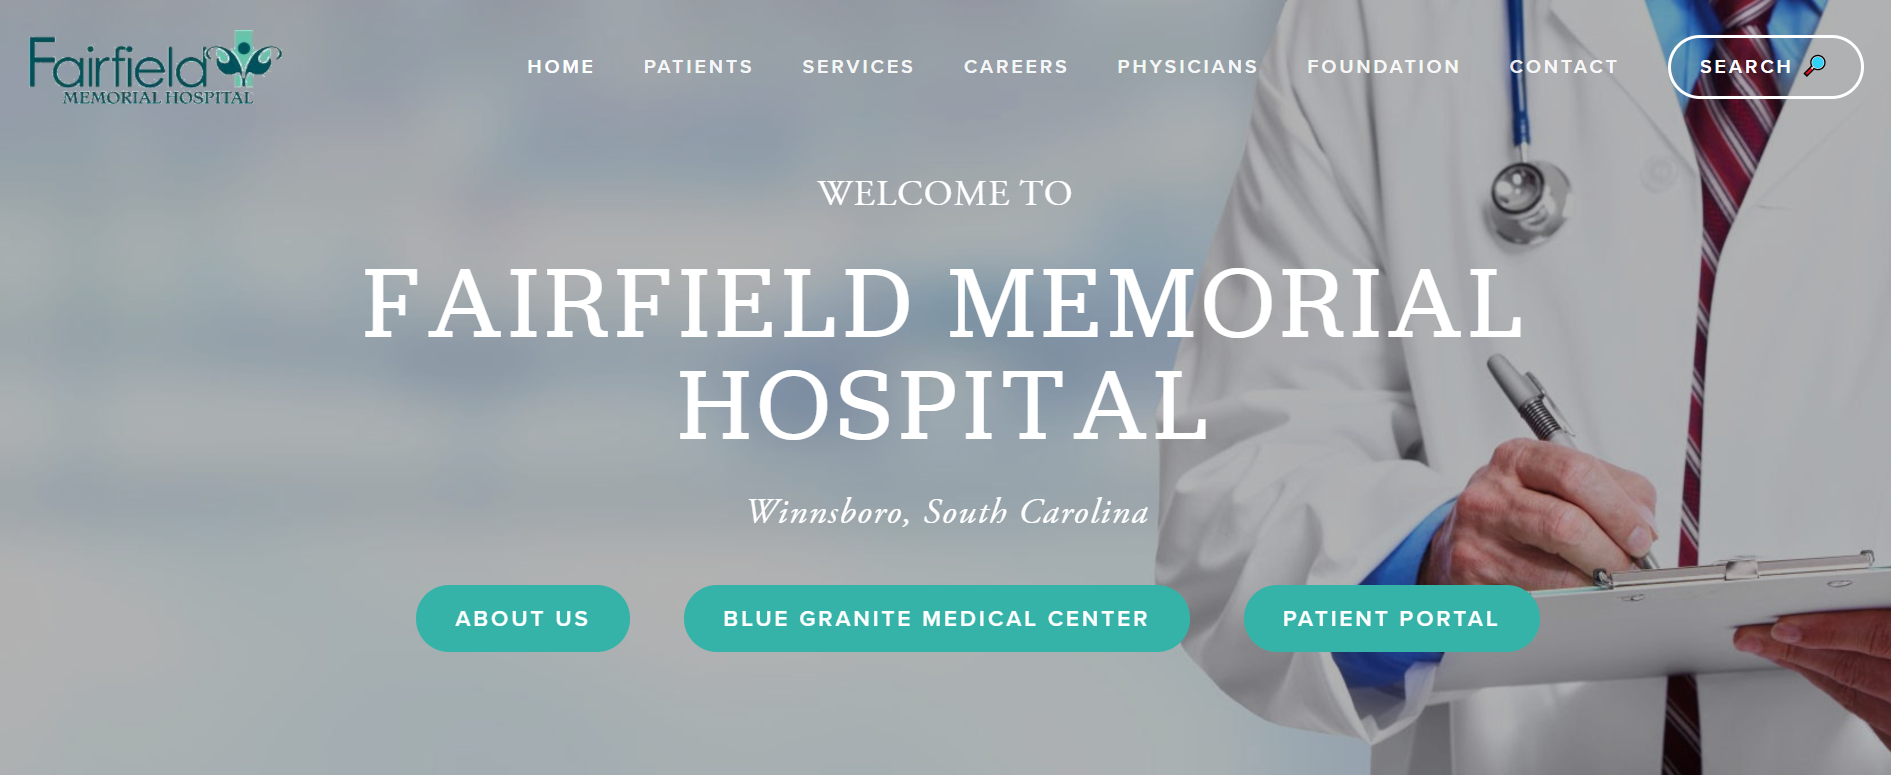 Fairfield Memorial Hospital - Modern Medicine. Old Fashioned Care.